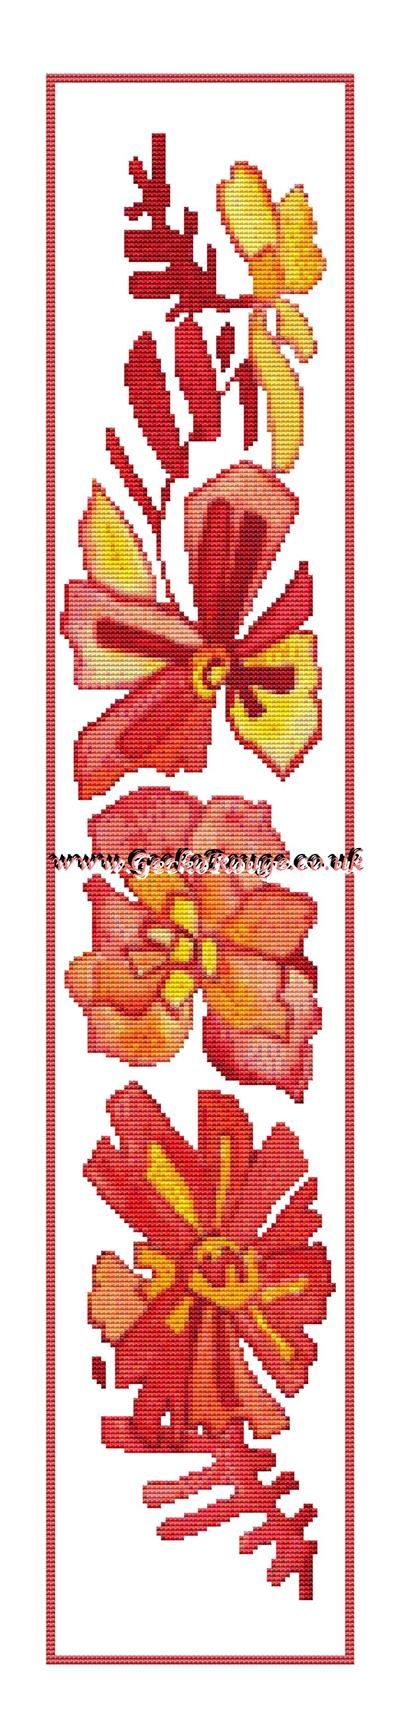 Runner 1 by Pamela Muller Cross Stitch Kit - Flowers